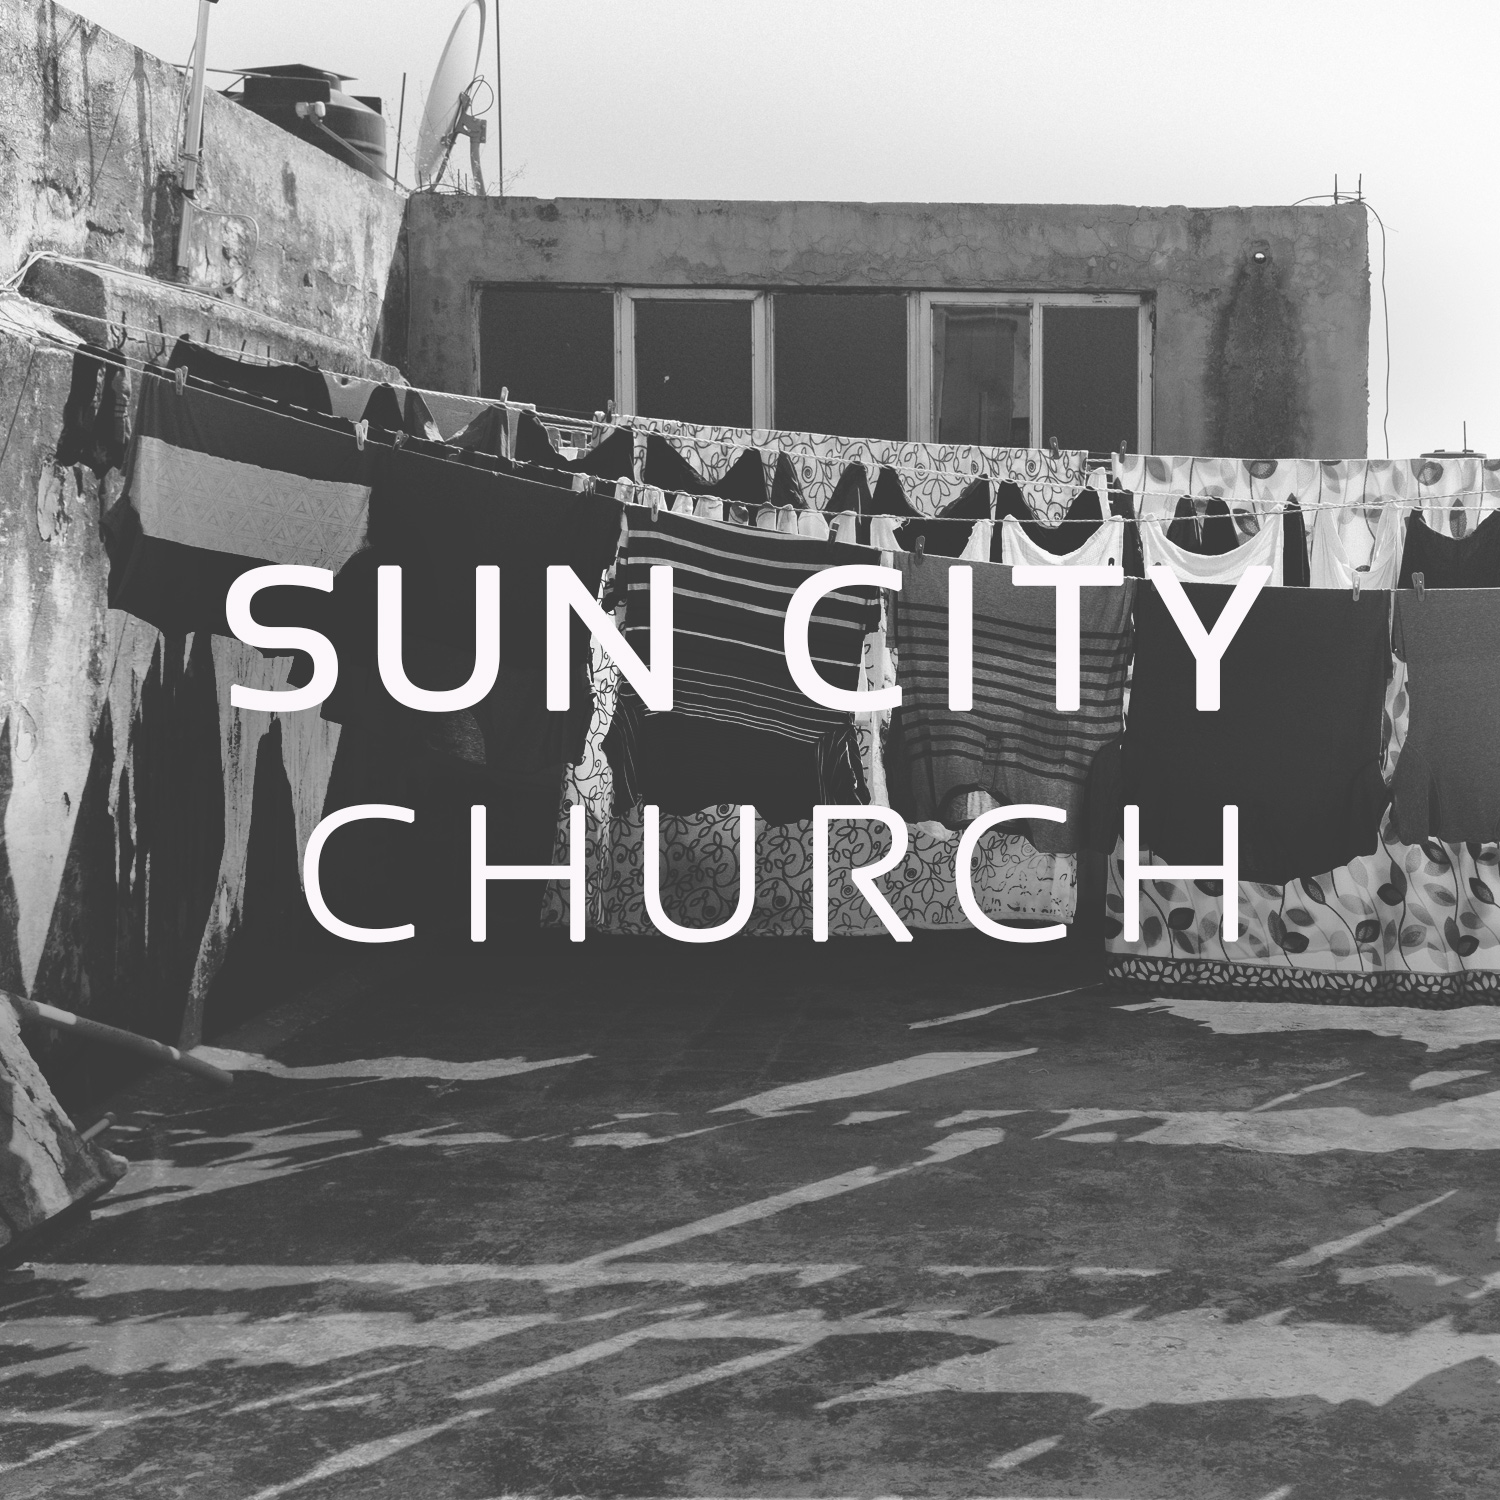 Sun City Church is a plant near the border town of El Paso, Texas. This city is one of the largest crossings in the US, adjacent to their sister city of Juarez, Mexico. Pastor Brant Small leads this young congregation.